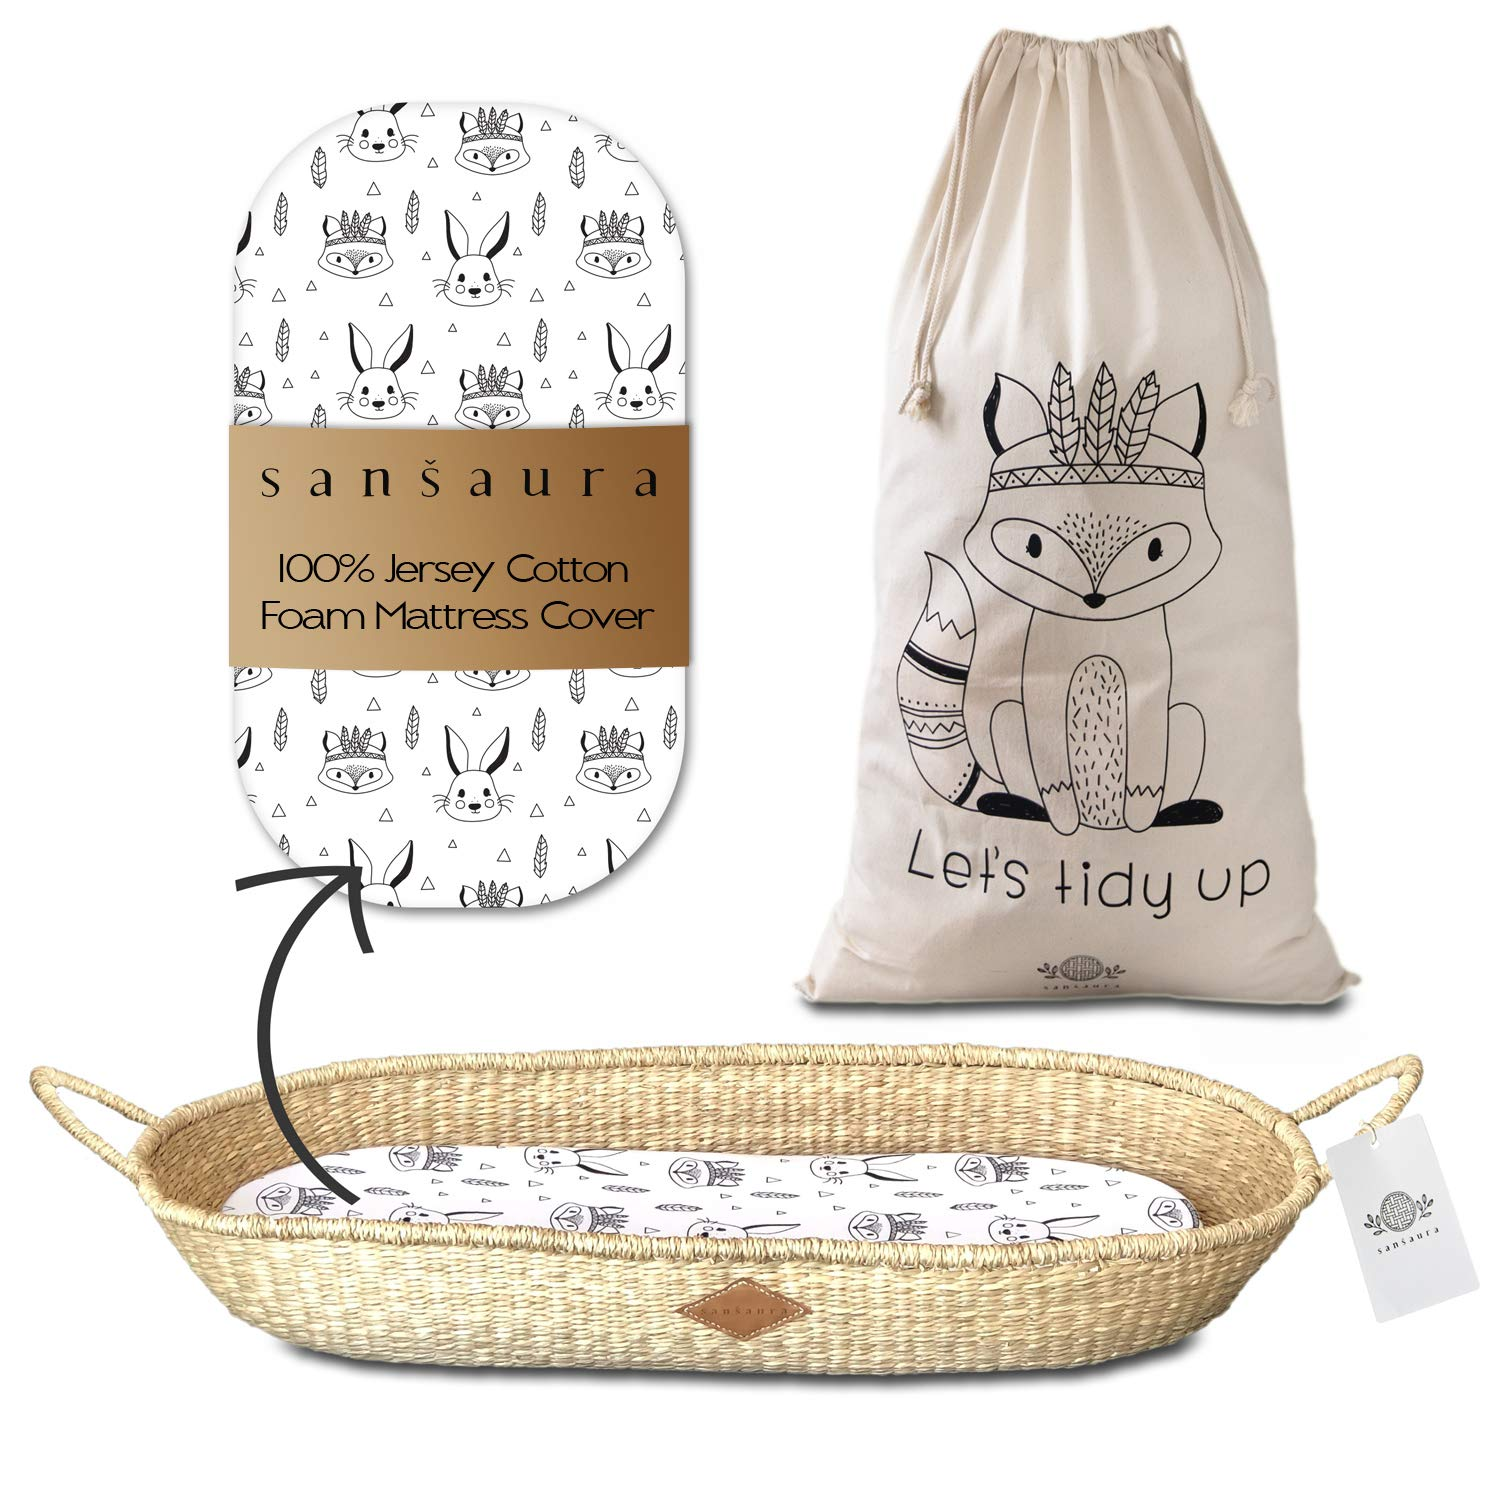 Wild Woodland Baby Changing Basket - Waterproof Foam Pad - with Cotton Fitted Sheet and Matching Toy Storage Bag - Changing Table Topper - Made by Sansaura